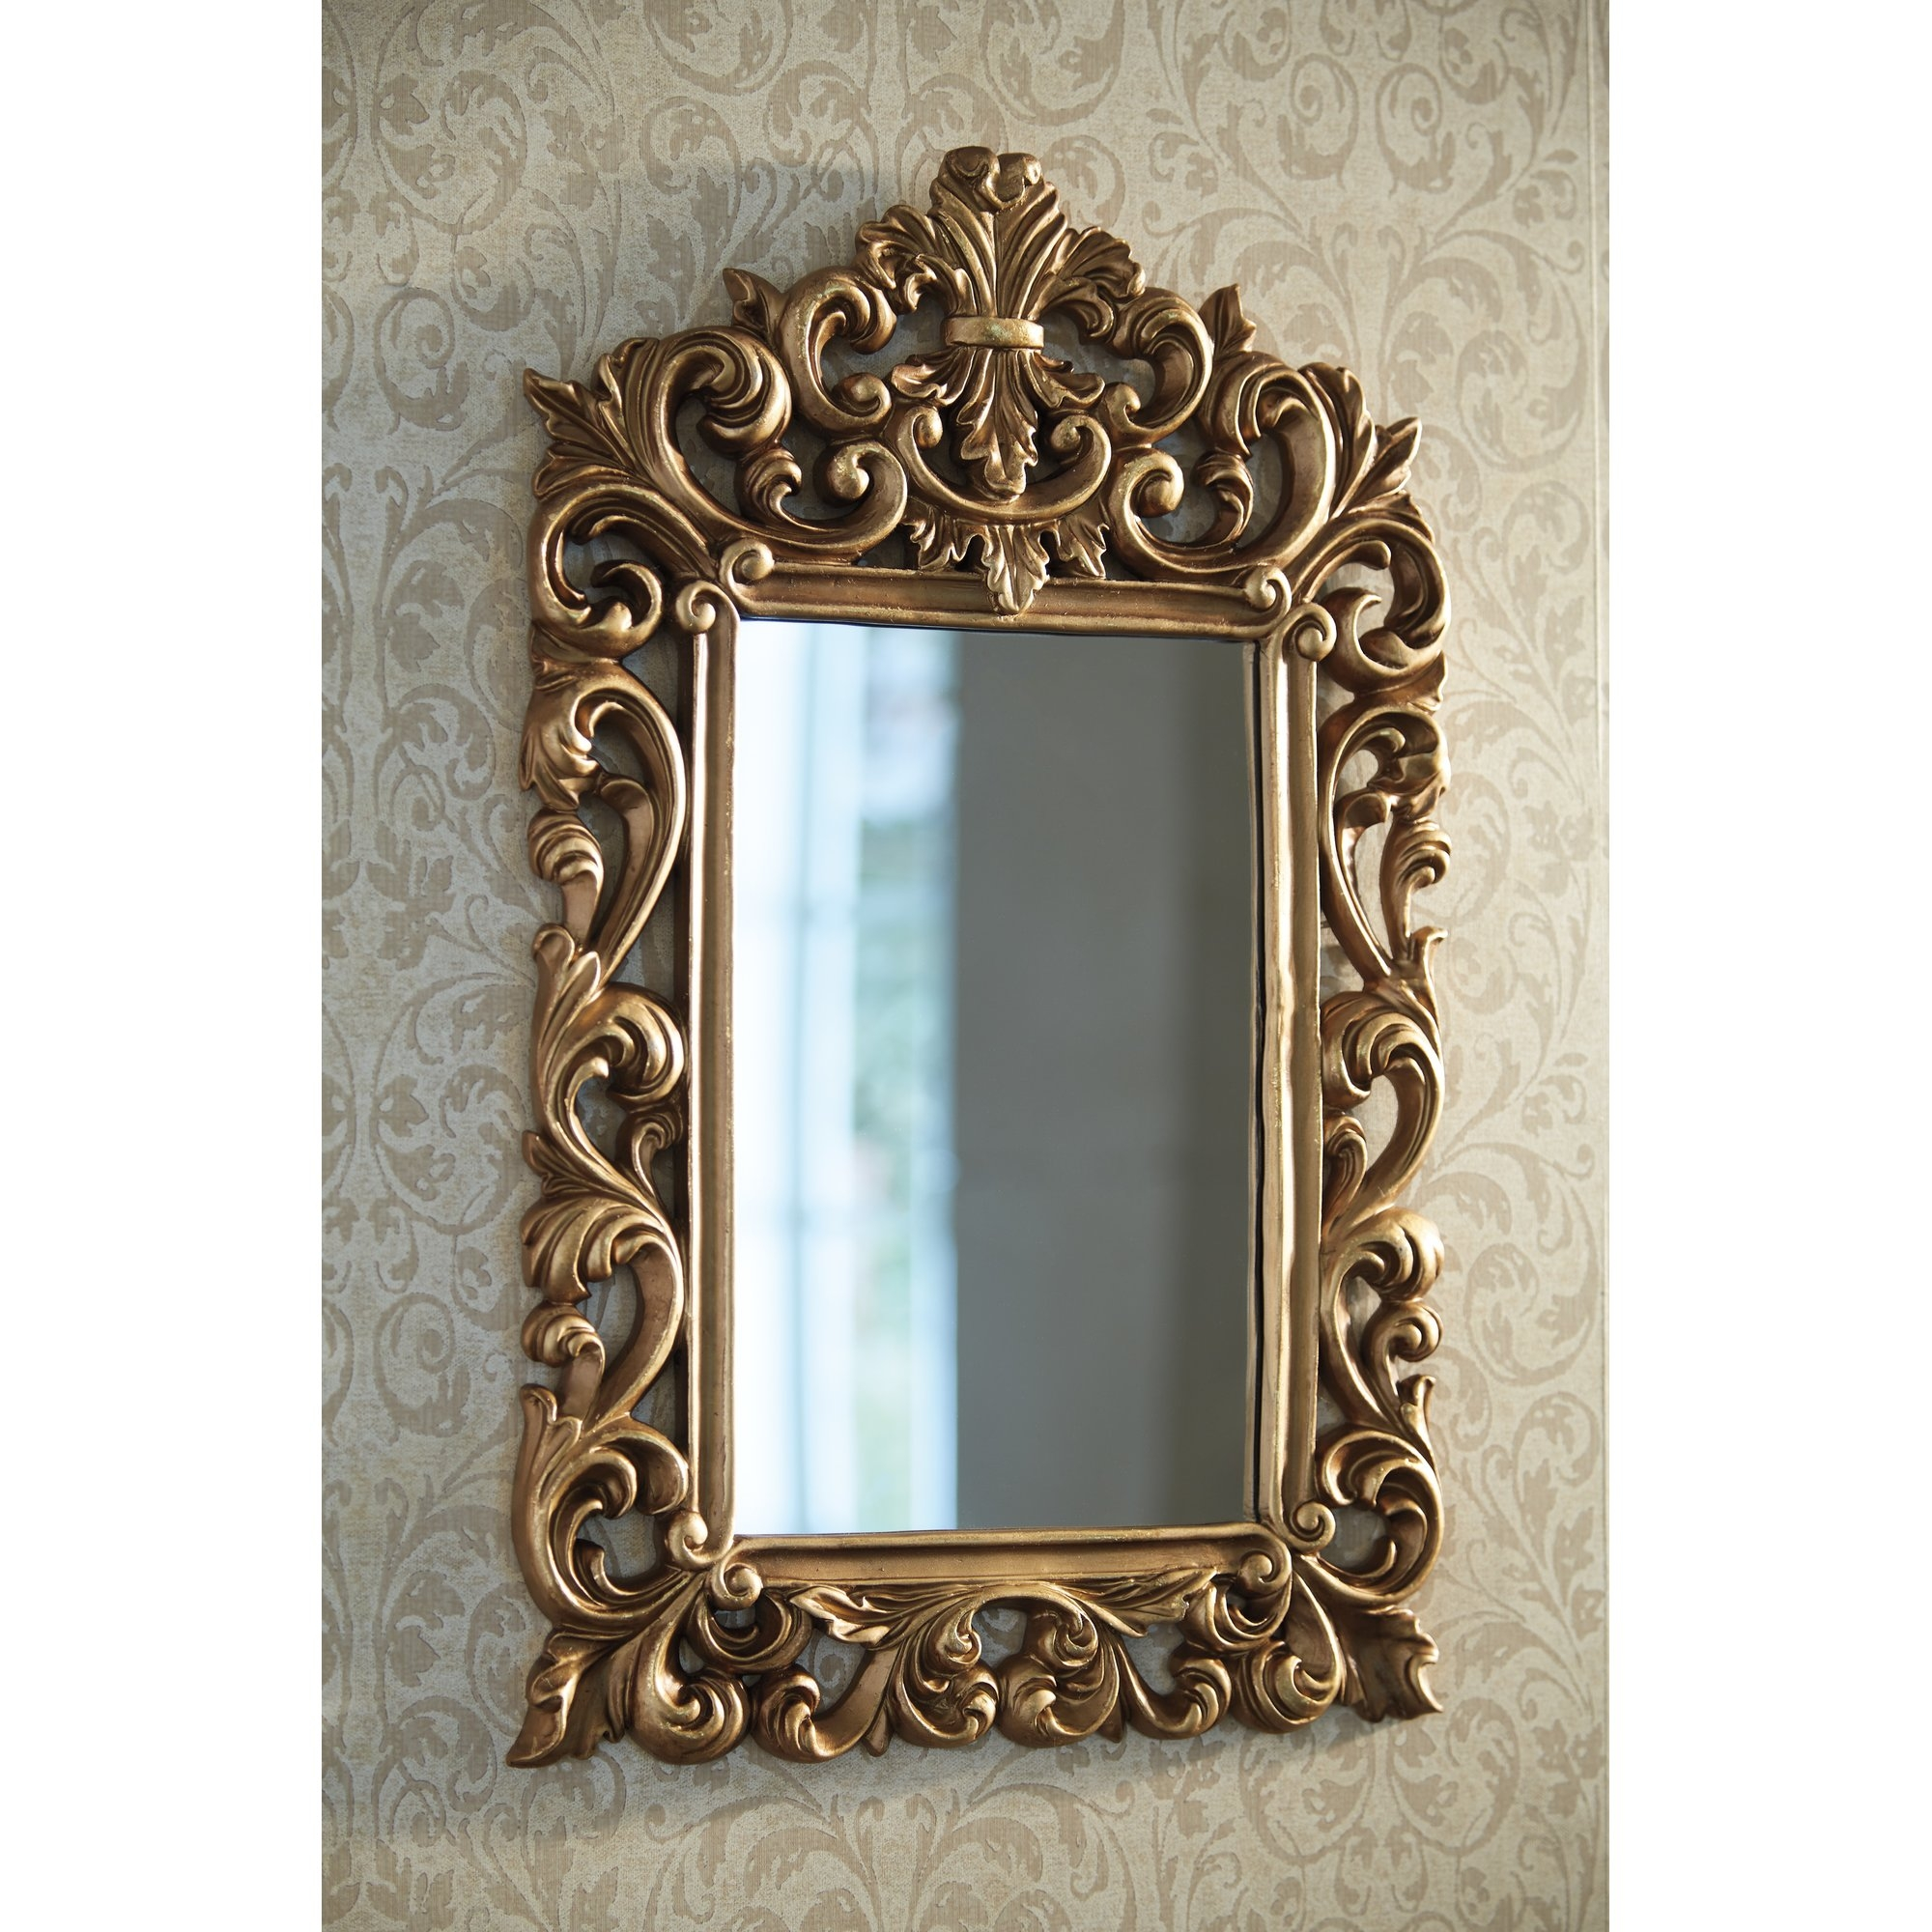 Alcott Hill Antique Gold Wall Mirror Reviews Wayfair For Long Gold Mirror (View 11 of 15)